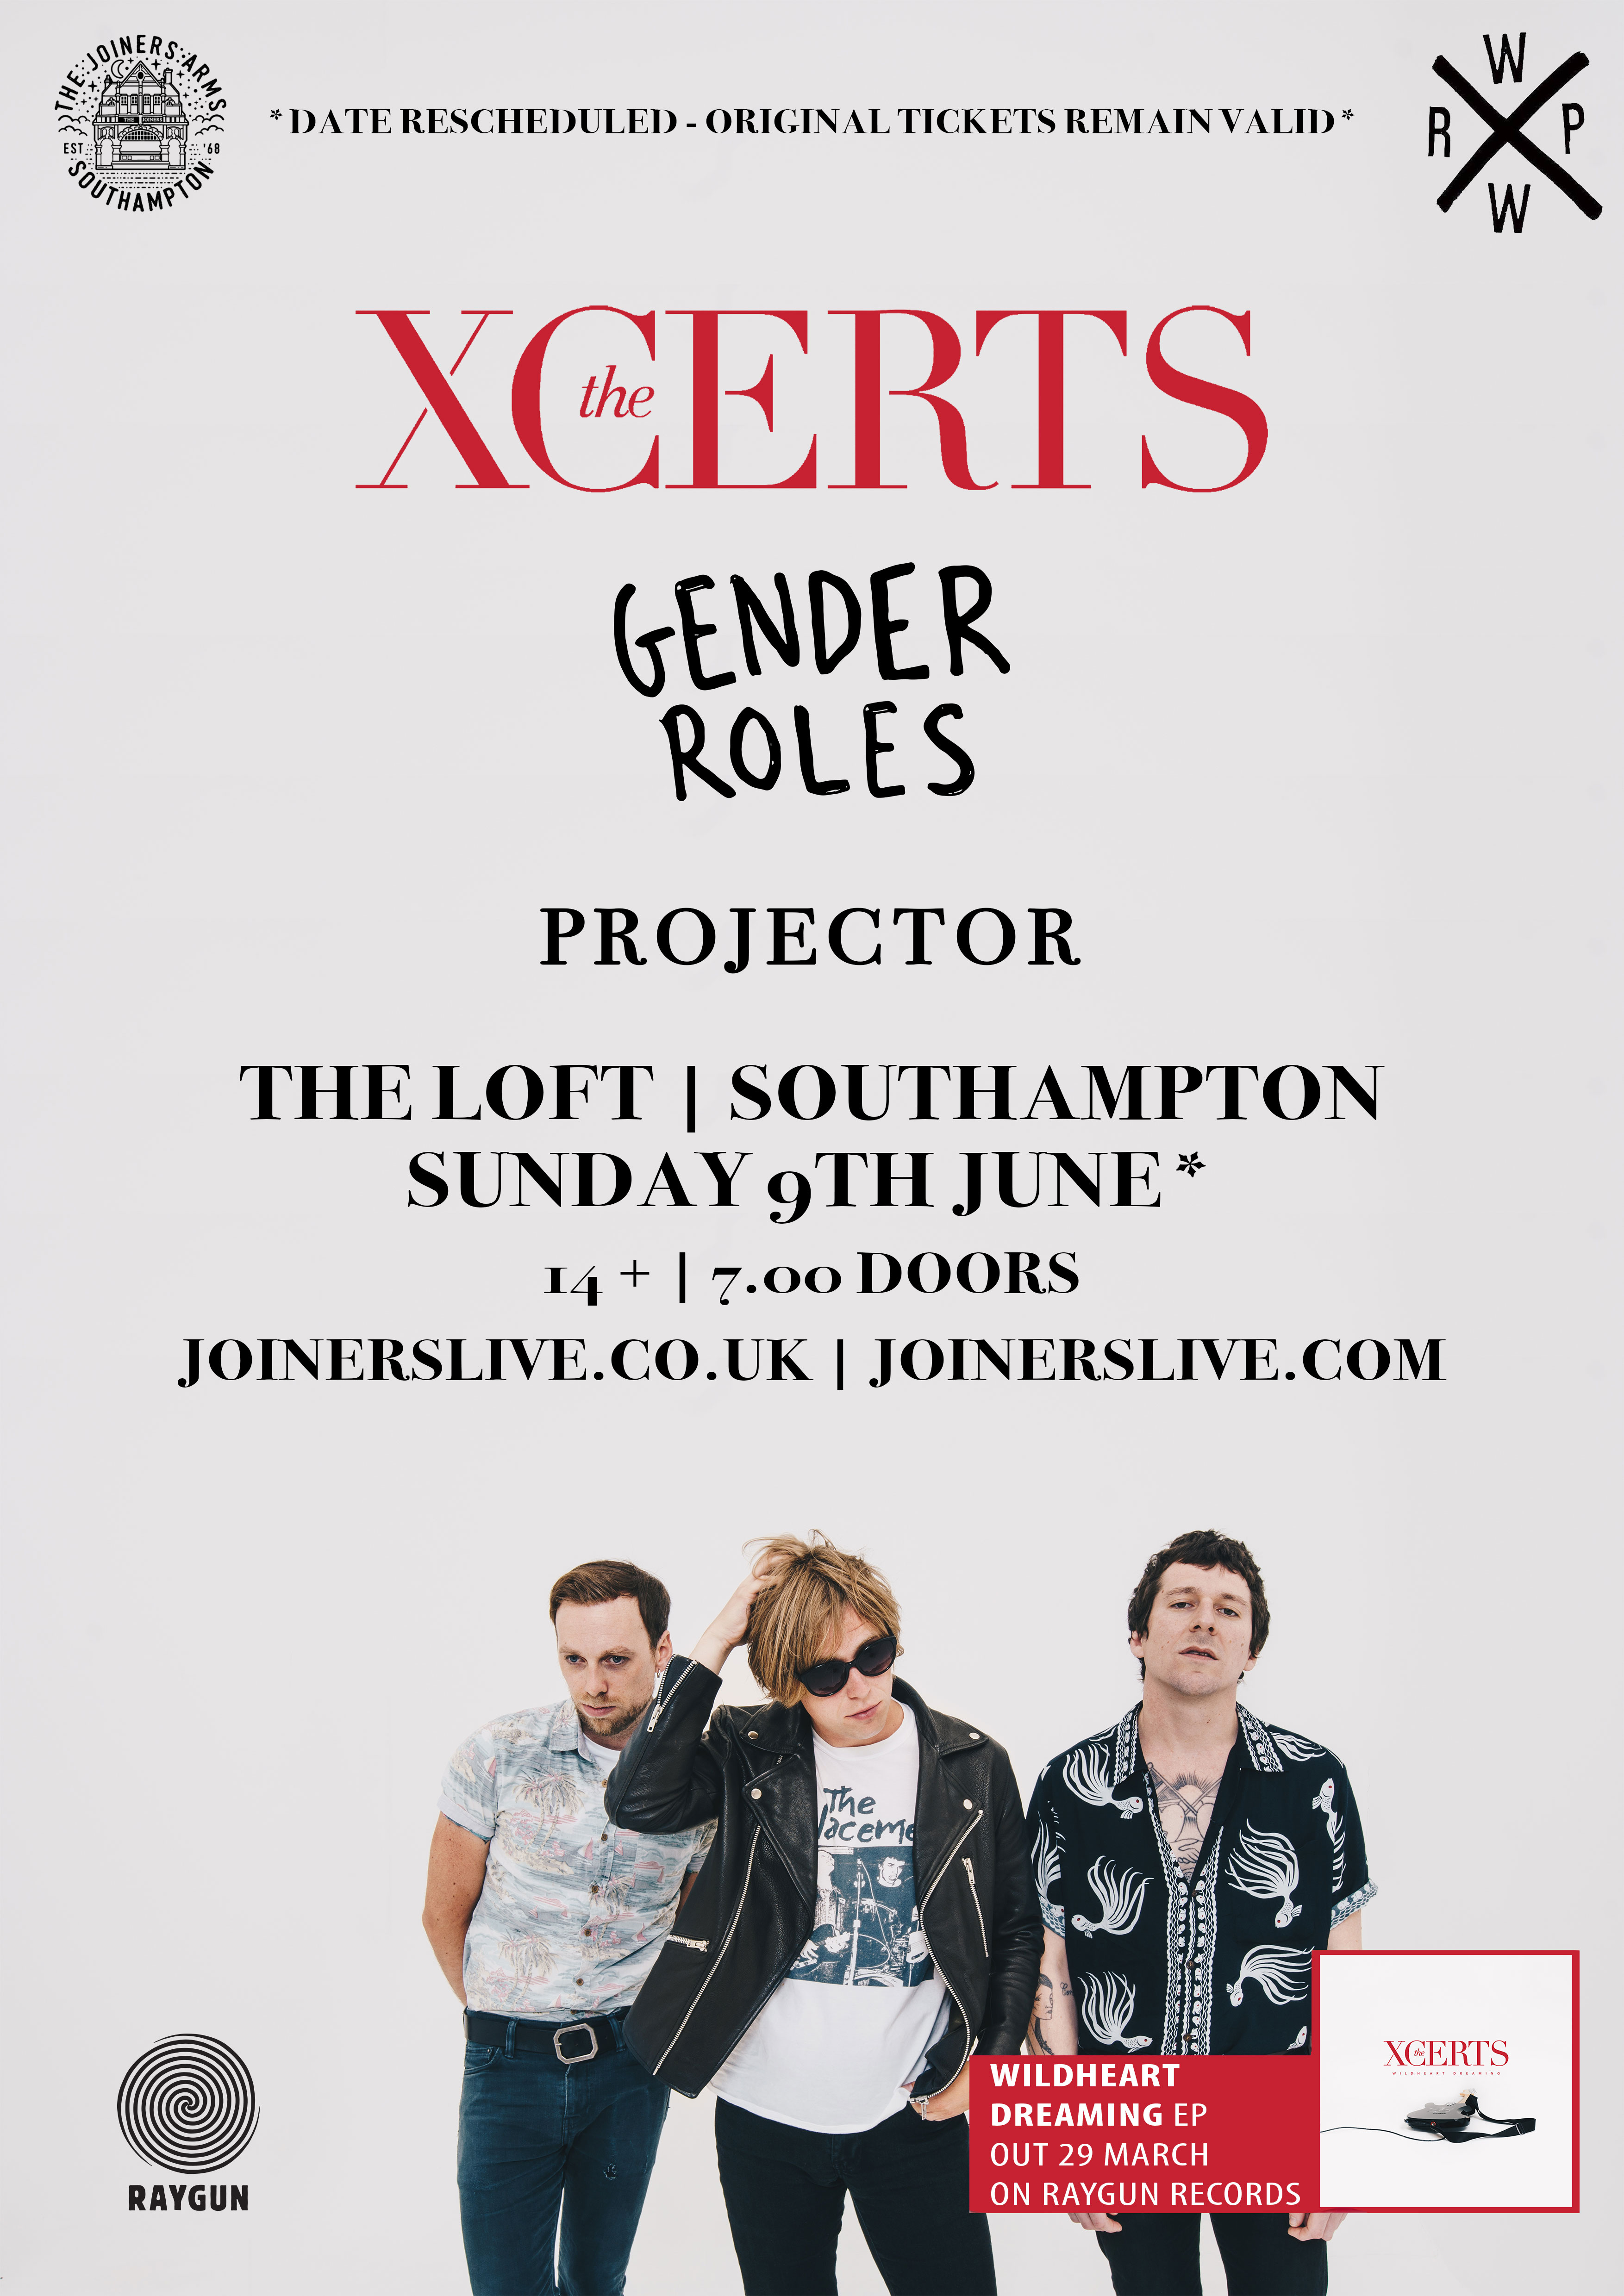 THE XCERTS AT THE LOFT - POSTPONED TO 9th JUNE 2019